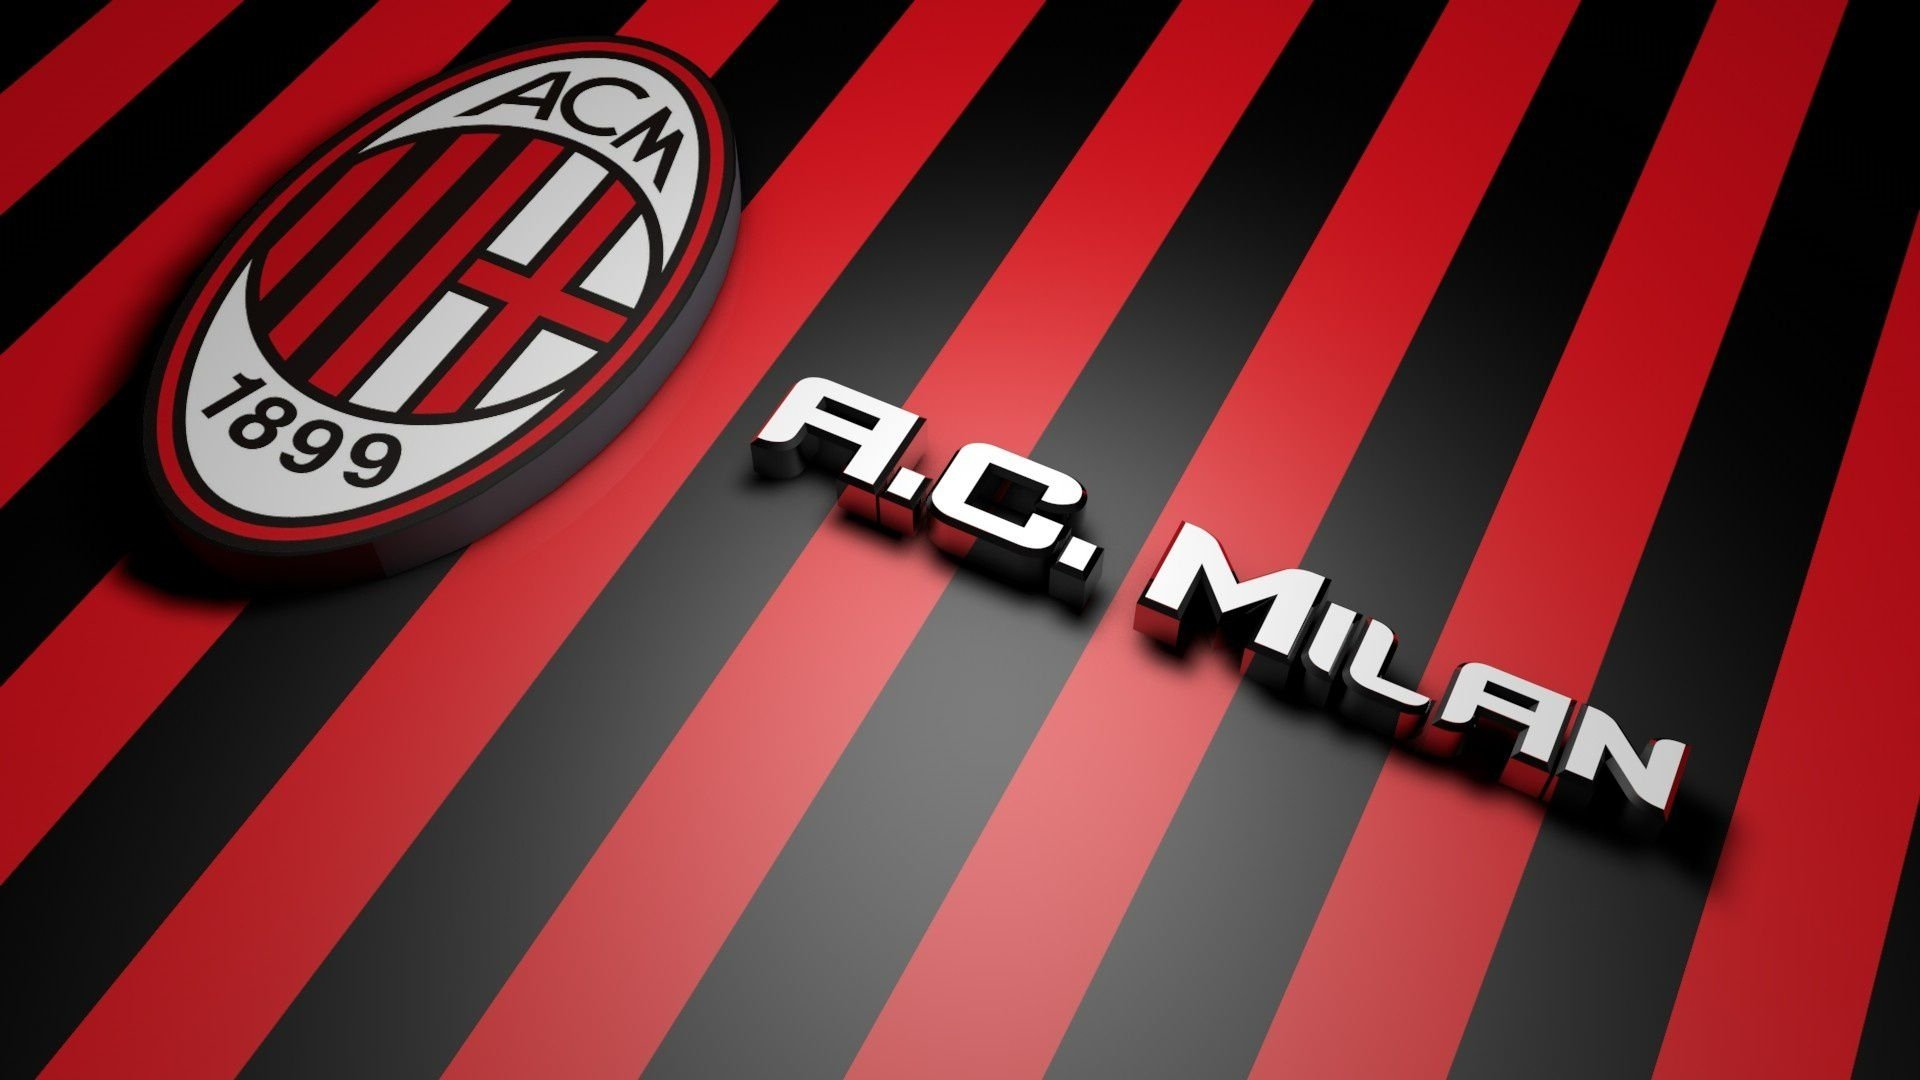 33 a c milan hd wallpapers background images wallpaper abyss 33 a c milan hd wallpapers